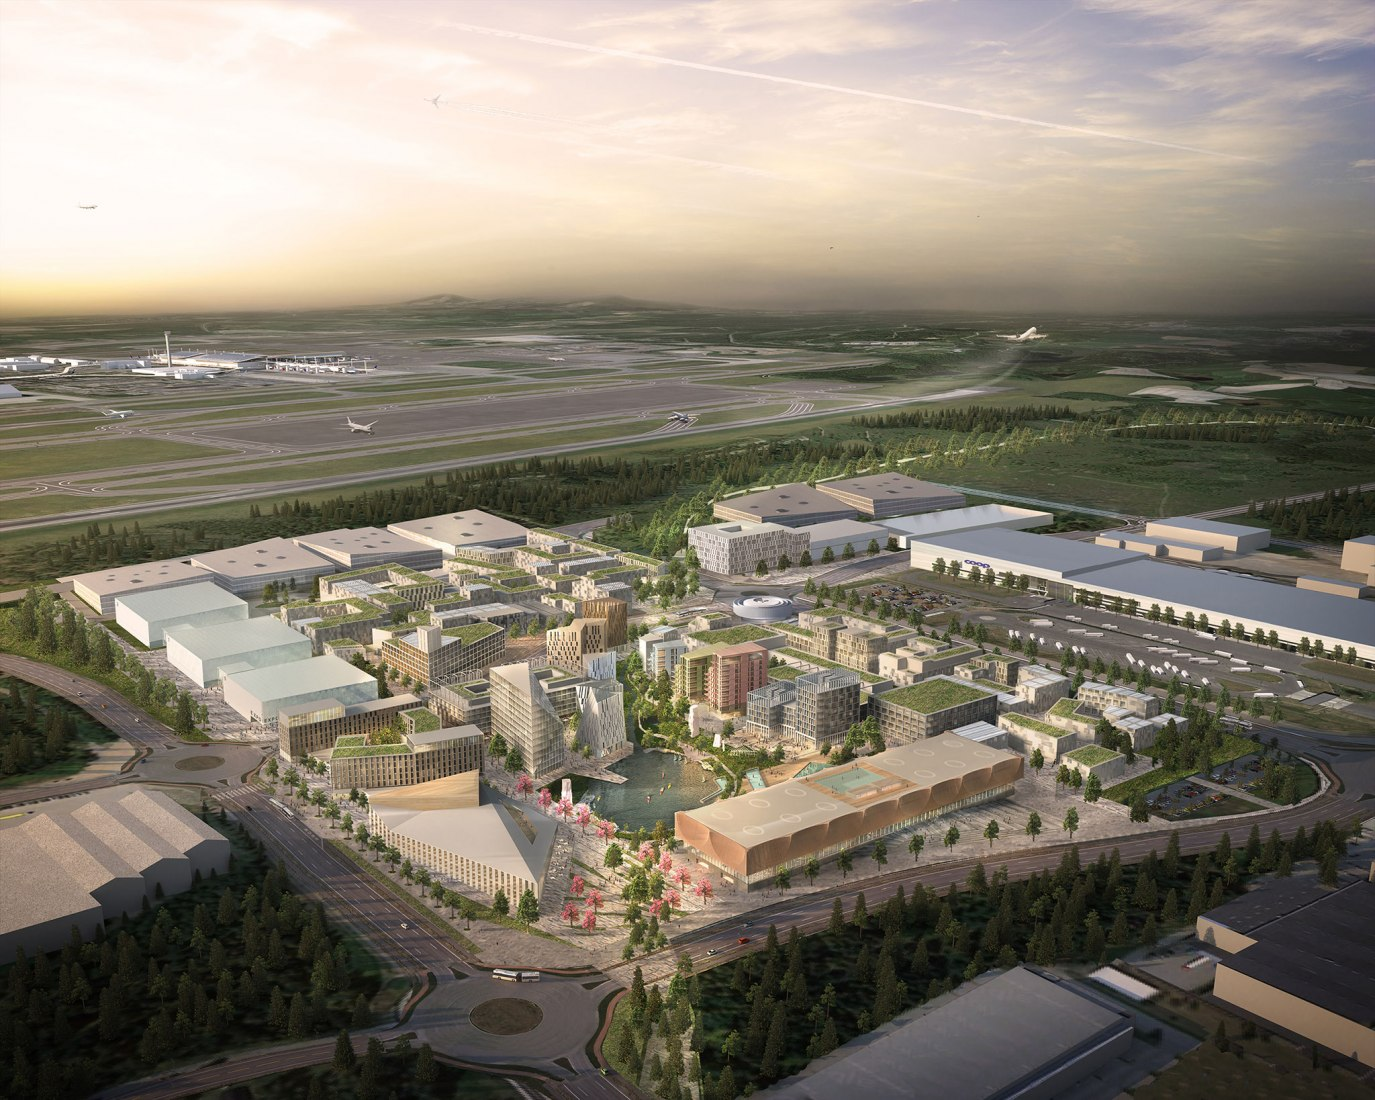 Aerial view. Masterplan of Oslo Airport City by Haptic Architects and Nordic — Office of Architecture. Image courtesy of Forbes Massie, Haptic Architects and Nordic — Office of Architecture